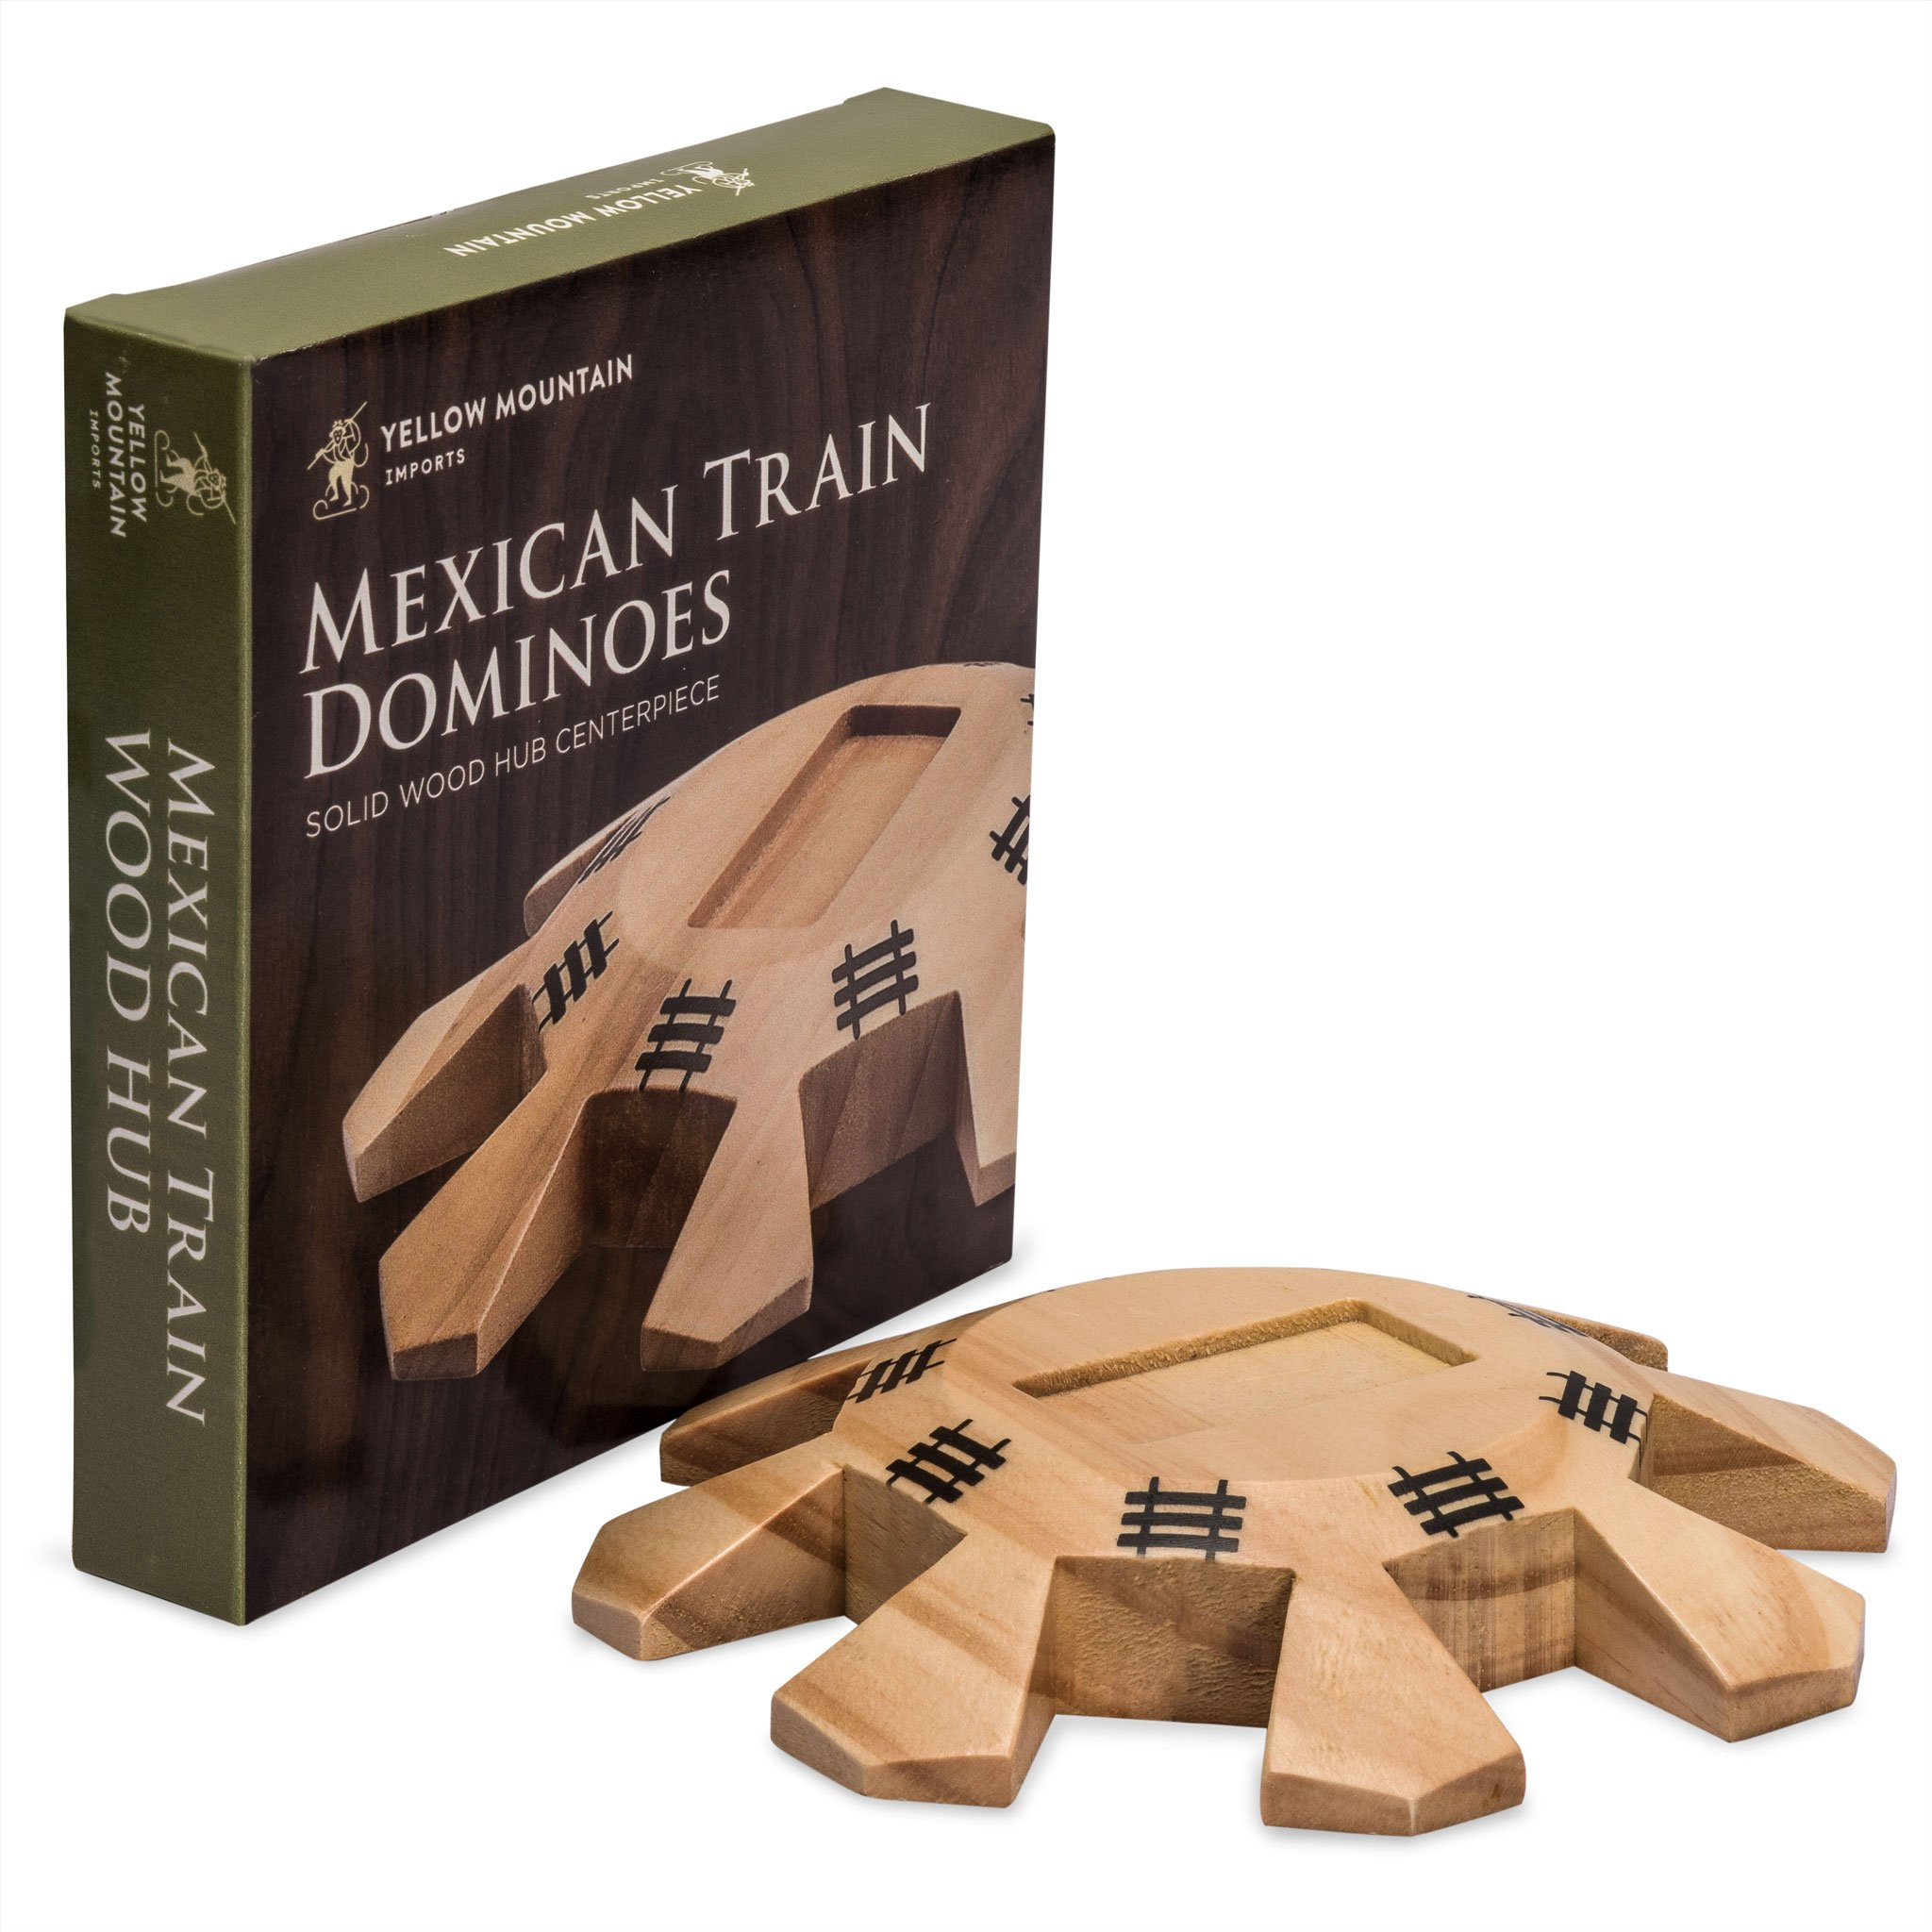 Yellow Mountain Imports Wooden Hub Centerpiece for Mexican Train Dominoes - Crafted from Solid Wood